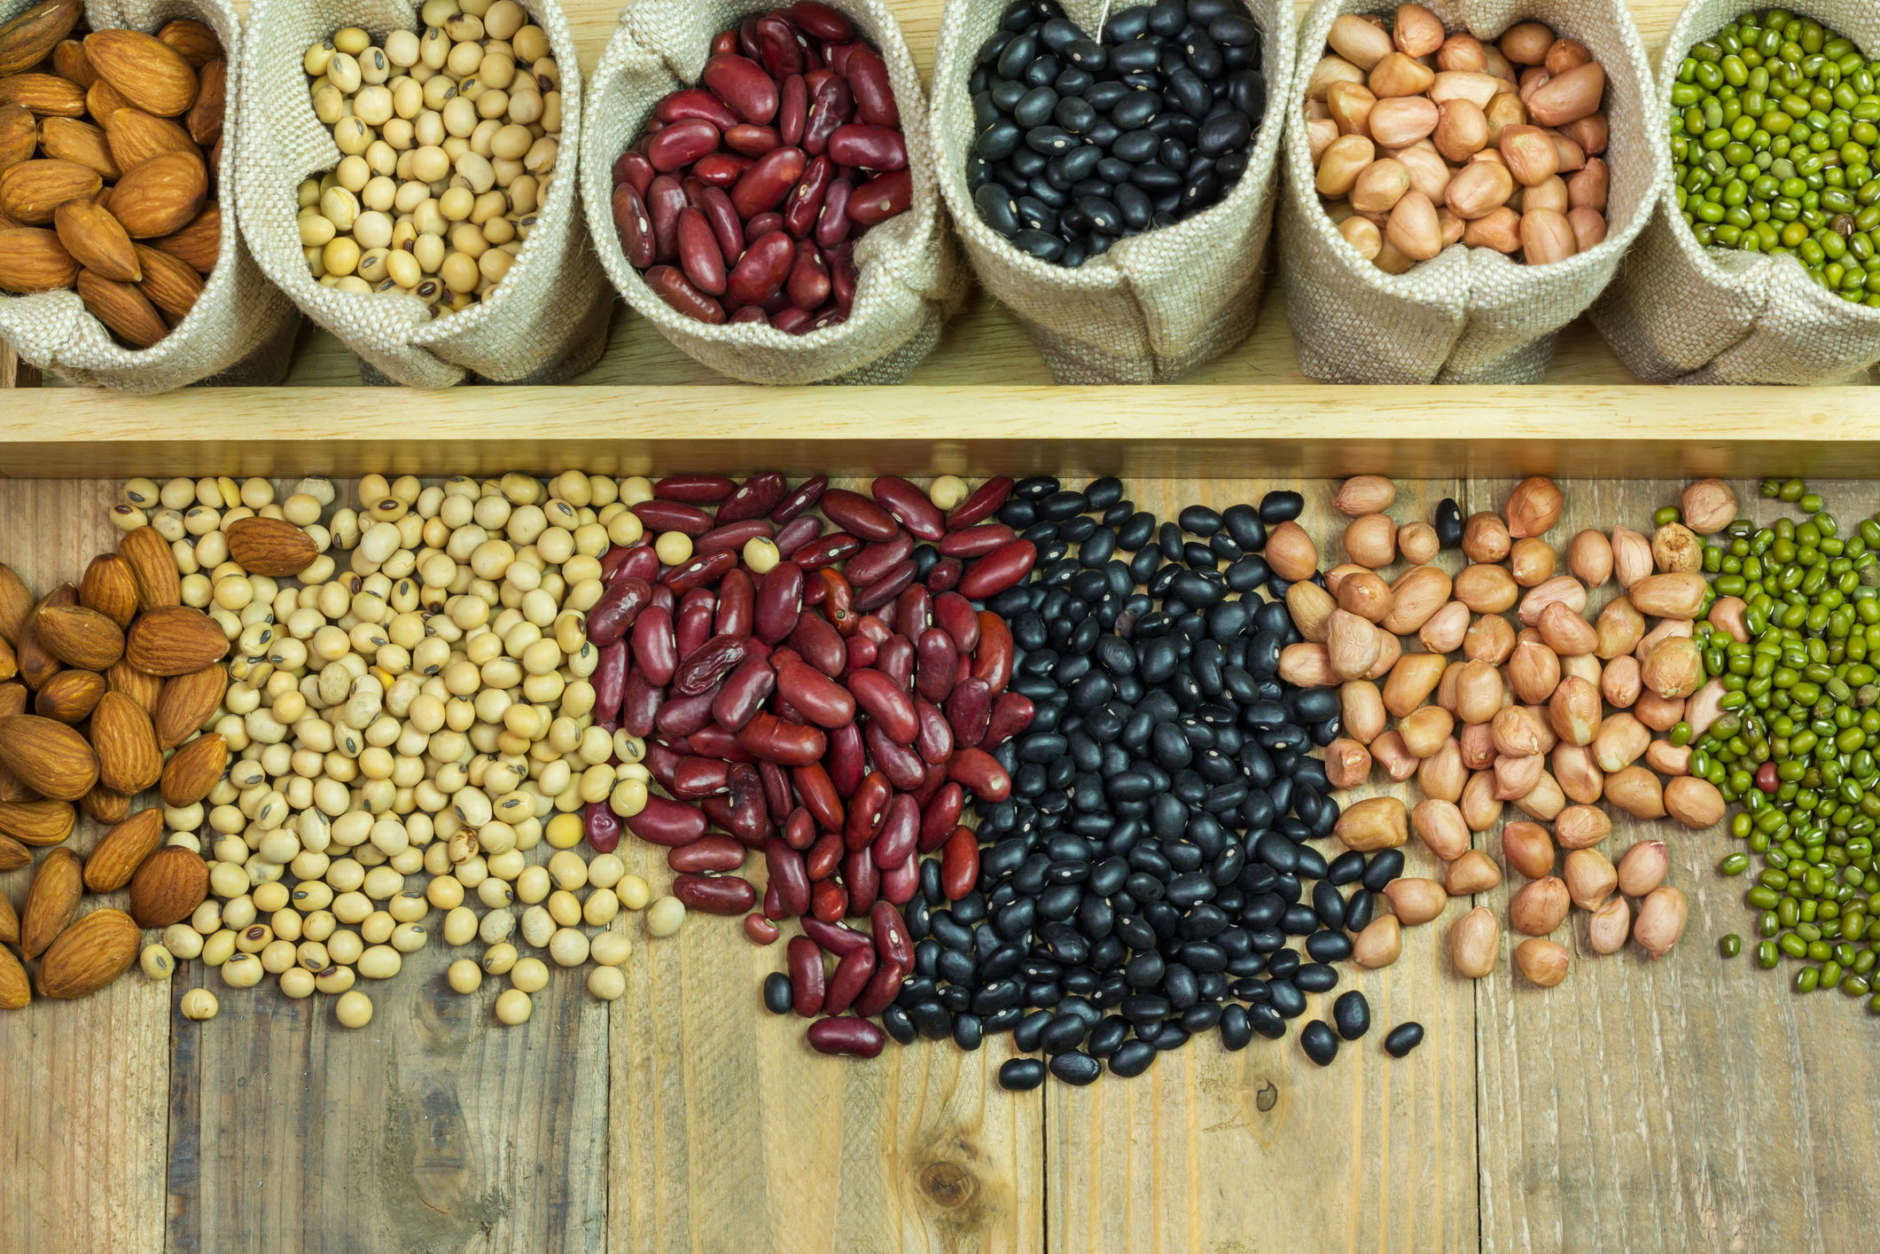 Eating beans and nuts on a daily basis can add years to your life. (Thinkstock)